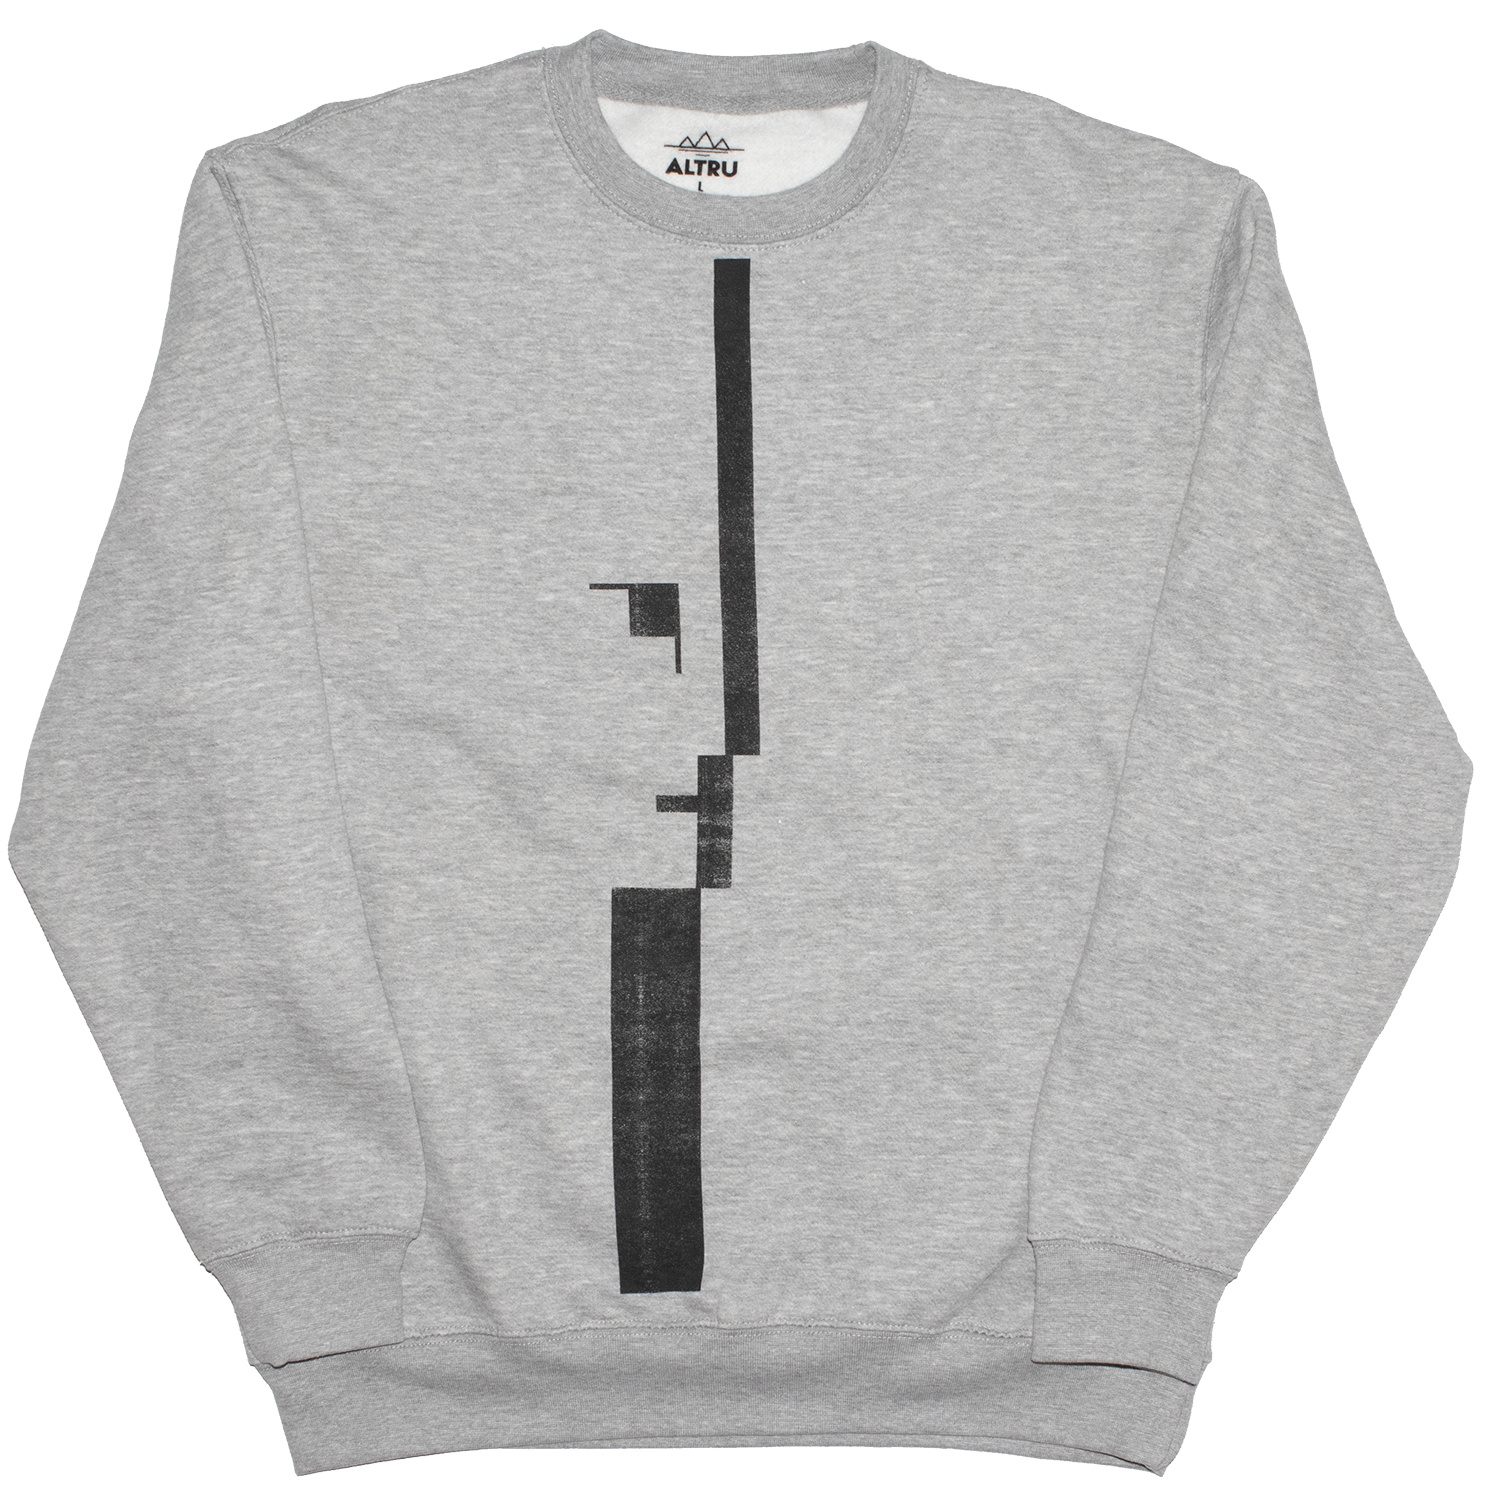 Bauhaus graphic sweatshirt